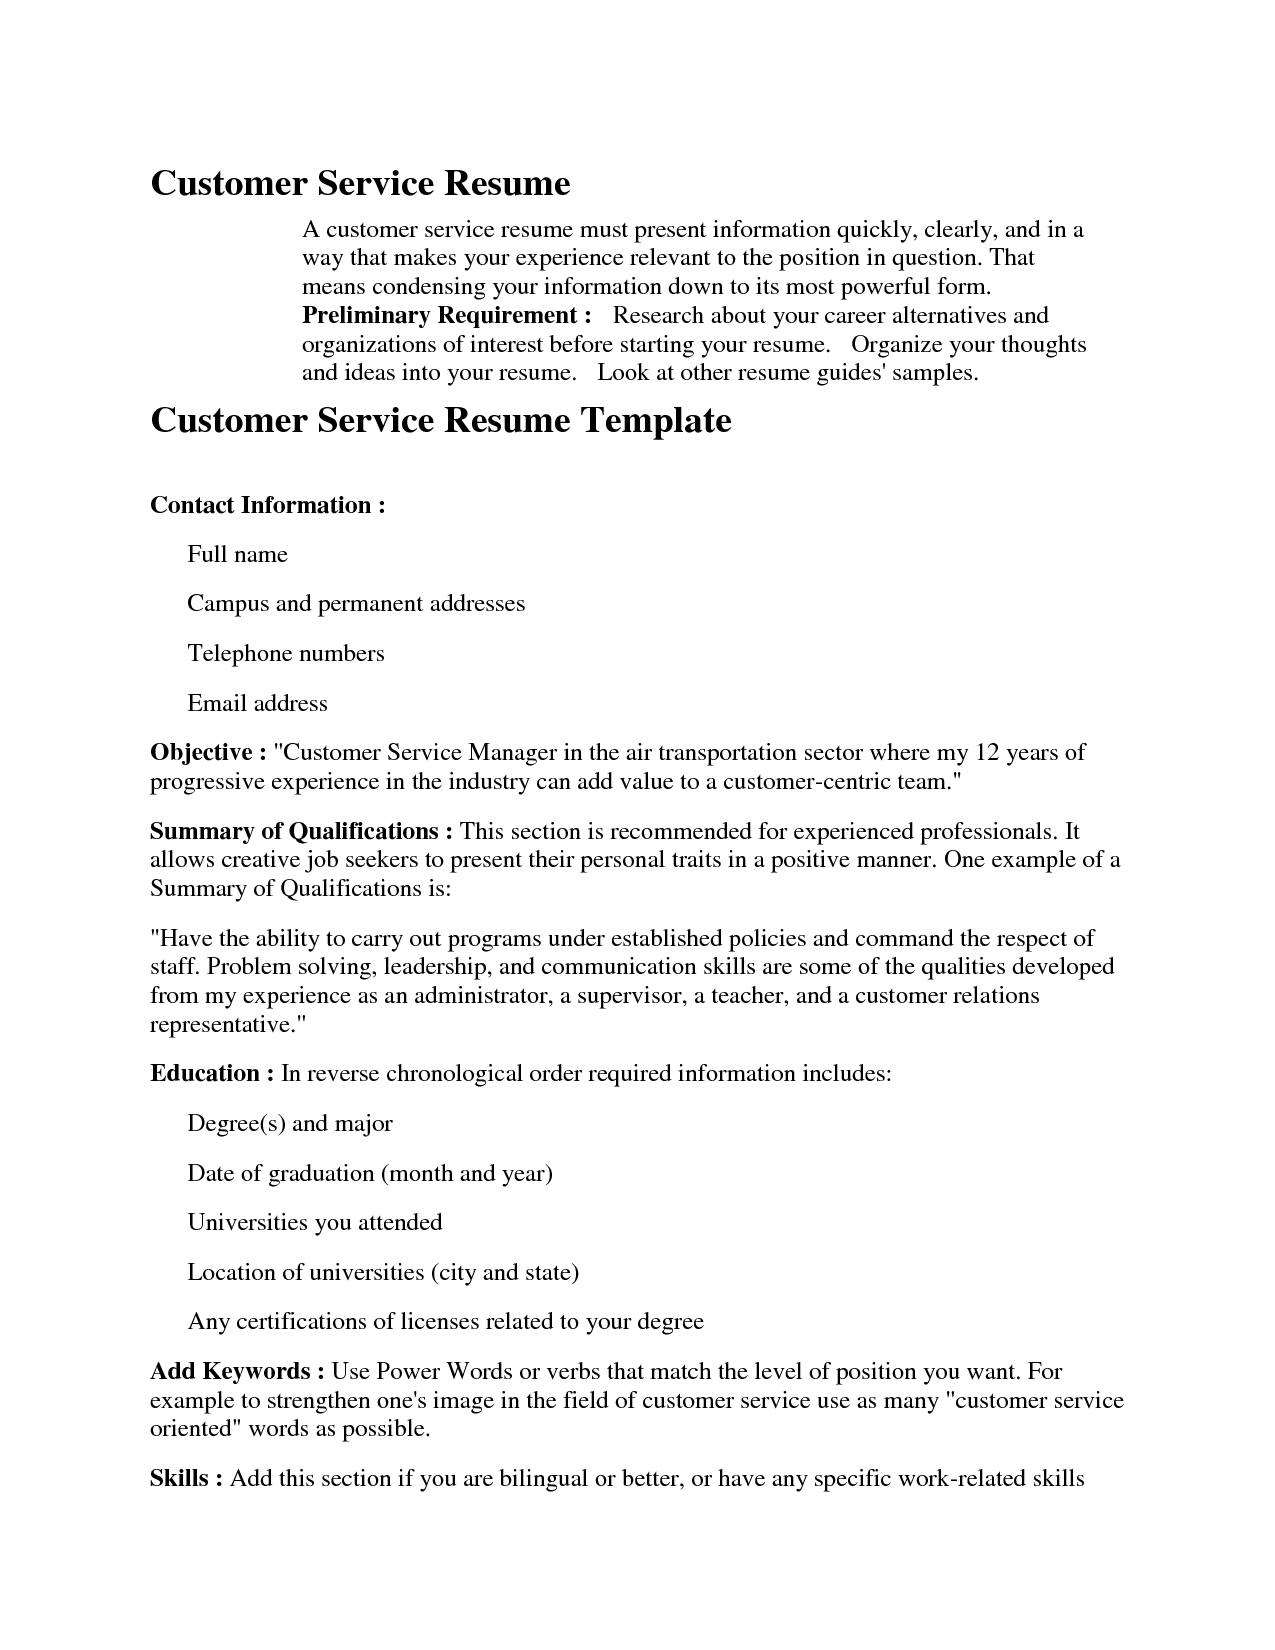 Resume Job Experience Job Wining Resume Samples For Customer Service Position Excellent